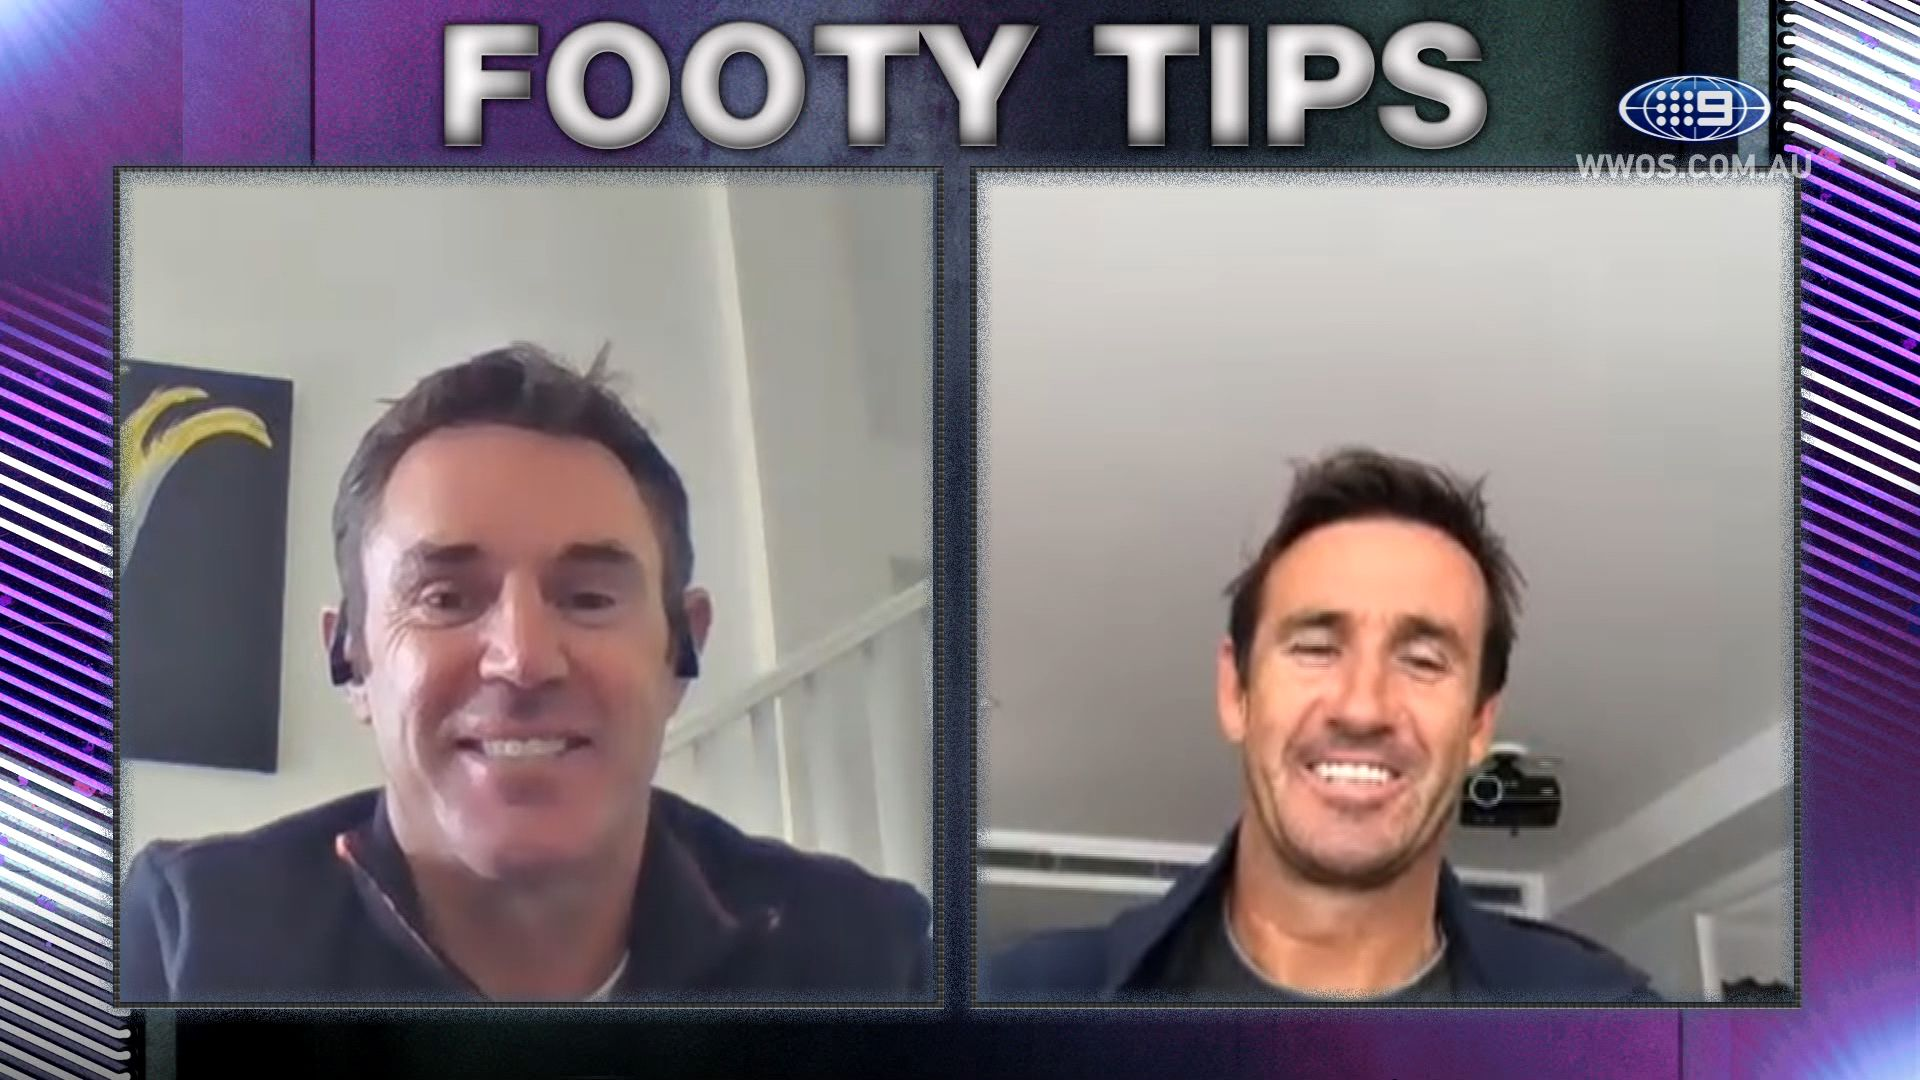 NRL Round 24 tips: Andrew Johns, Brad Fittler and Nine's experts give their predictions